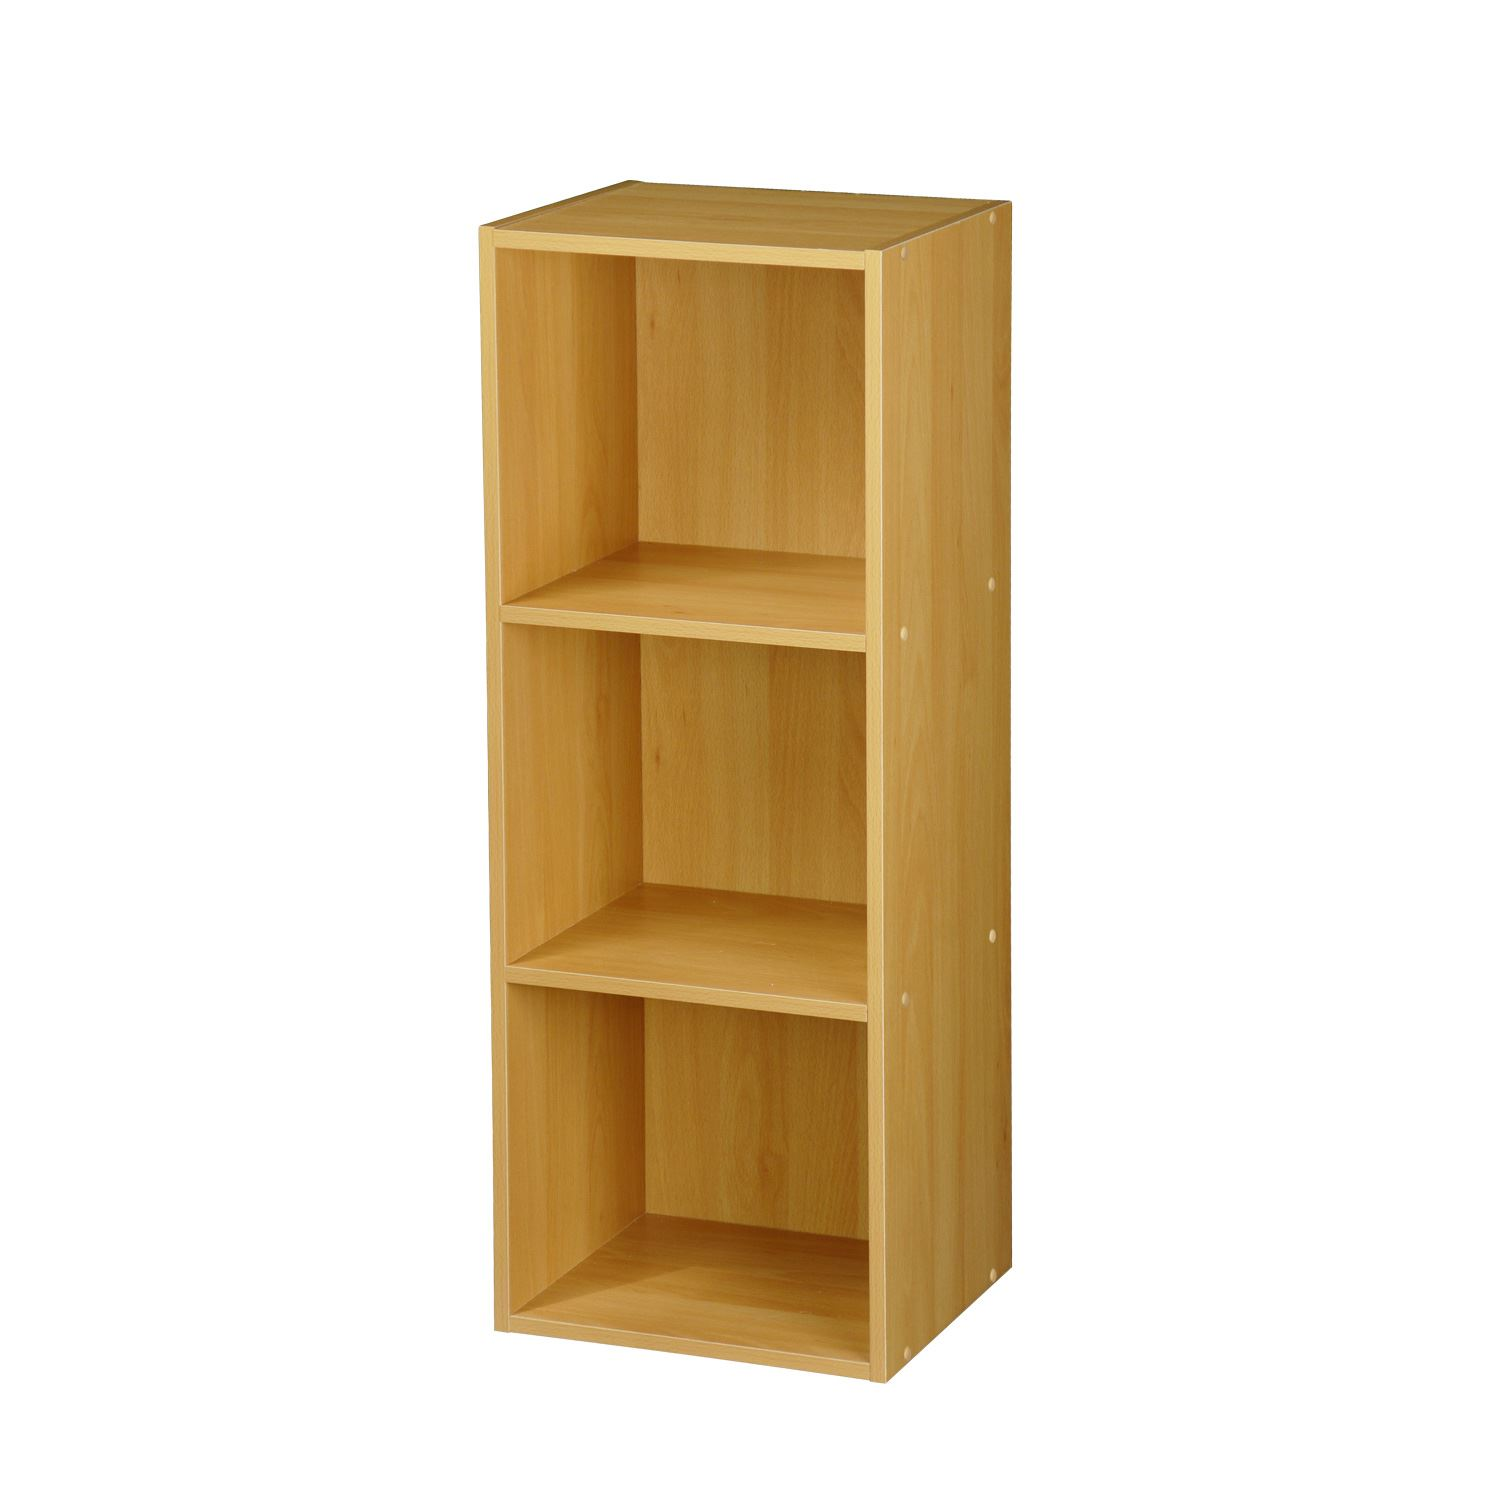 Tier Strong Wooden Bookcase Shelving Cube Storage